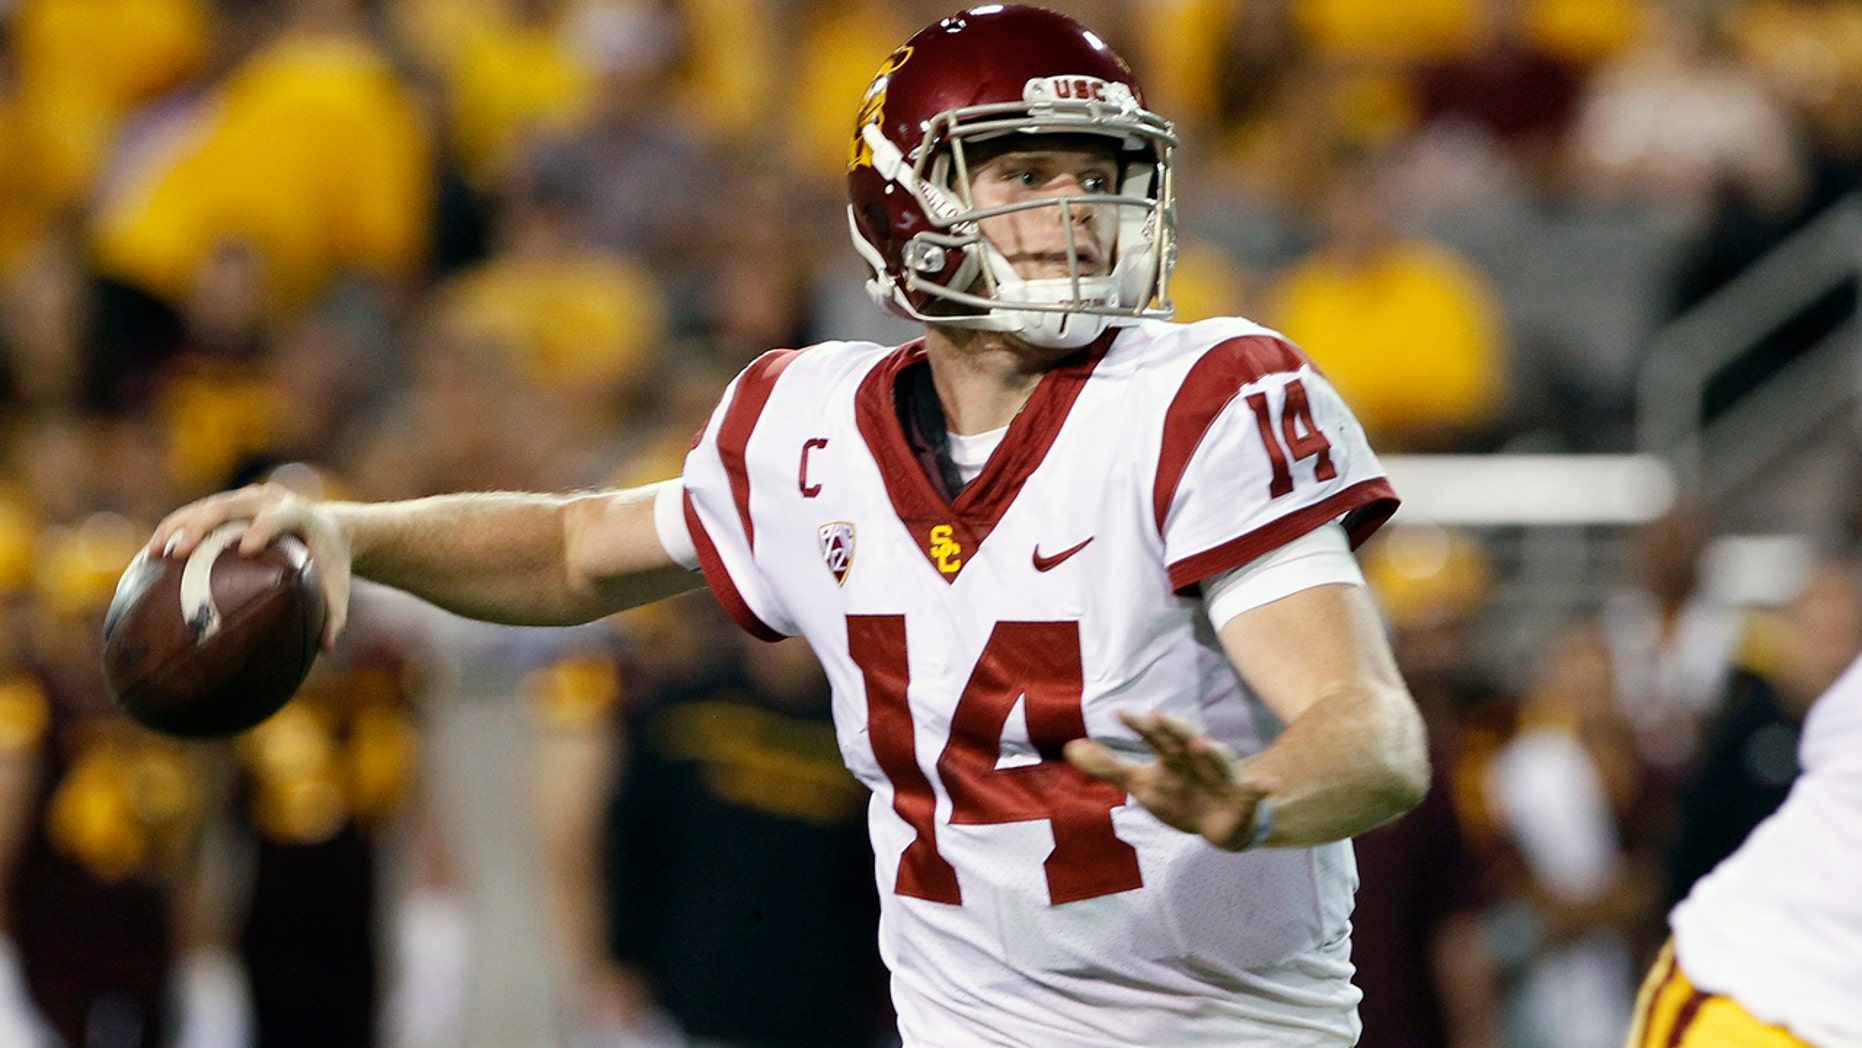 Sam Darnold through for more than 7,000 yards in two seasons quarterbacking USC.